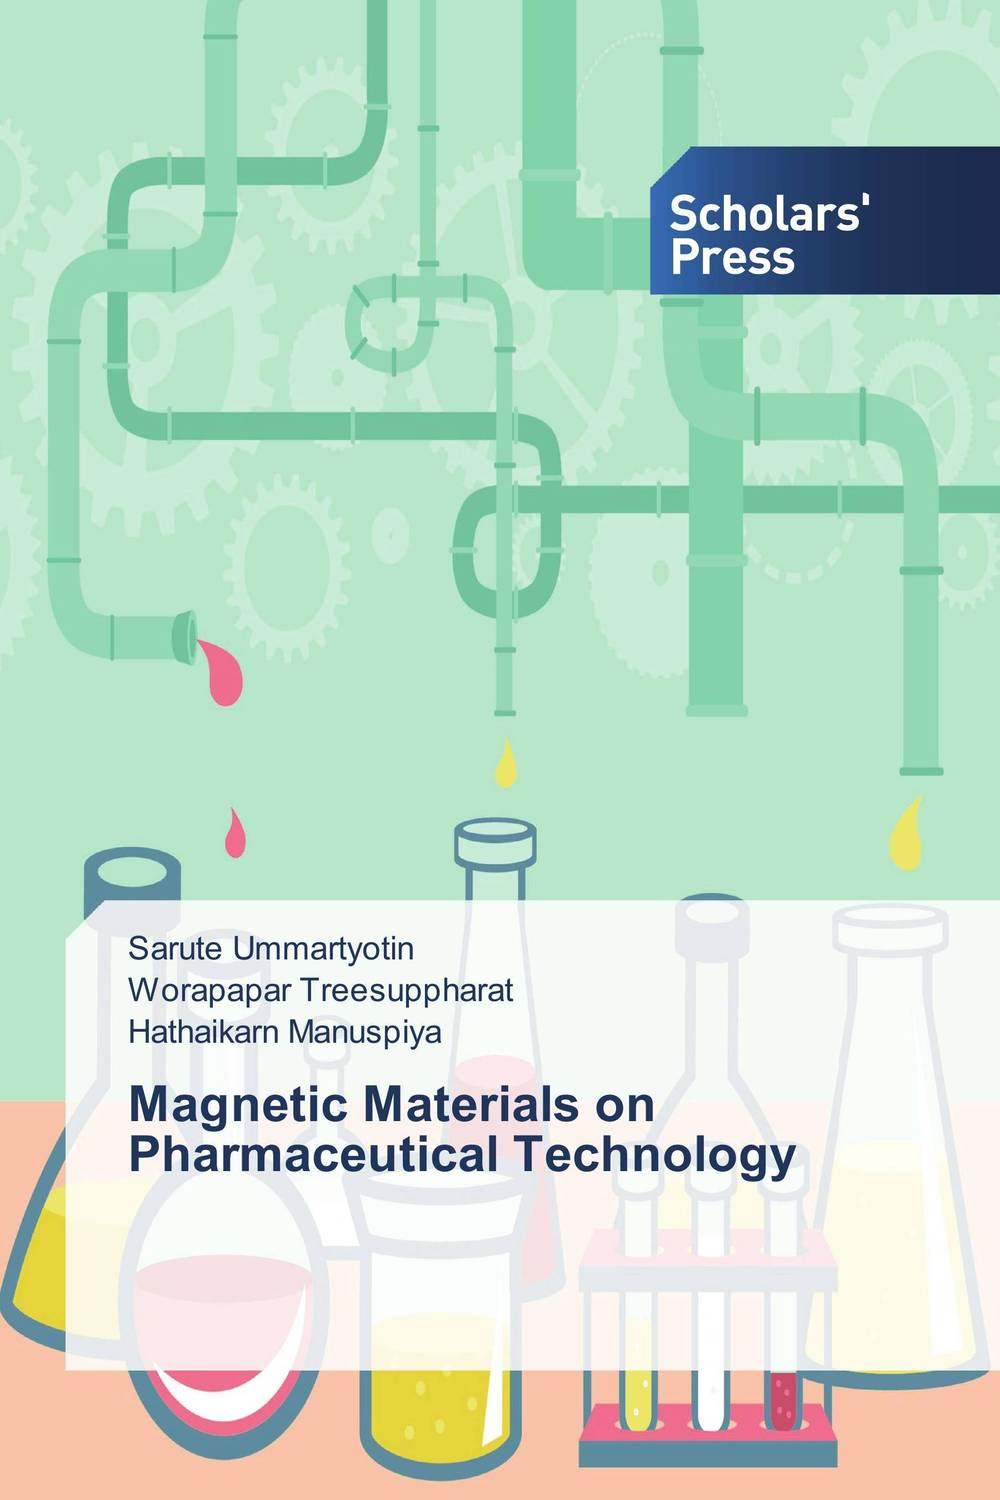 Magnetic Materials on Pharmaceutical Technology